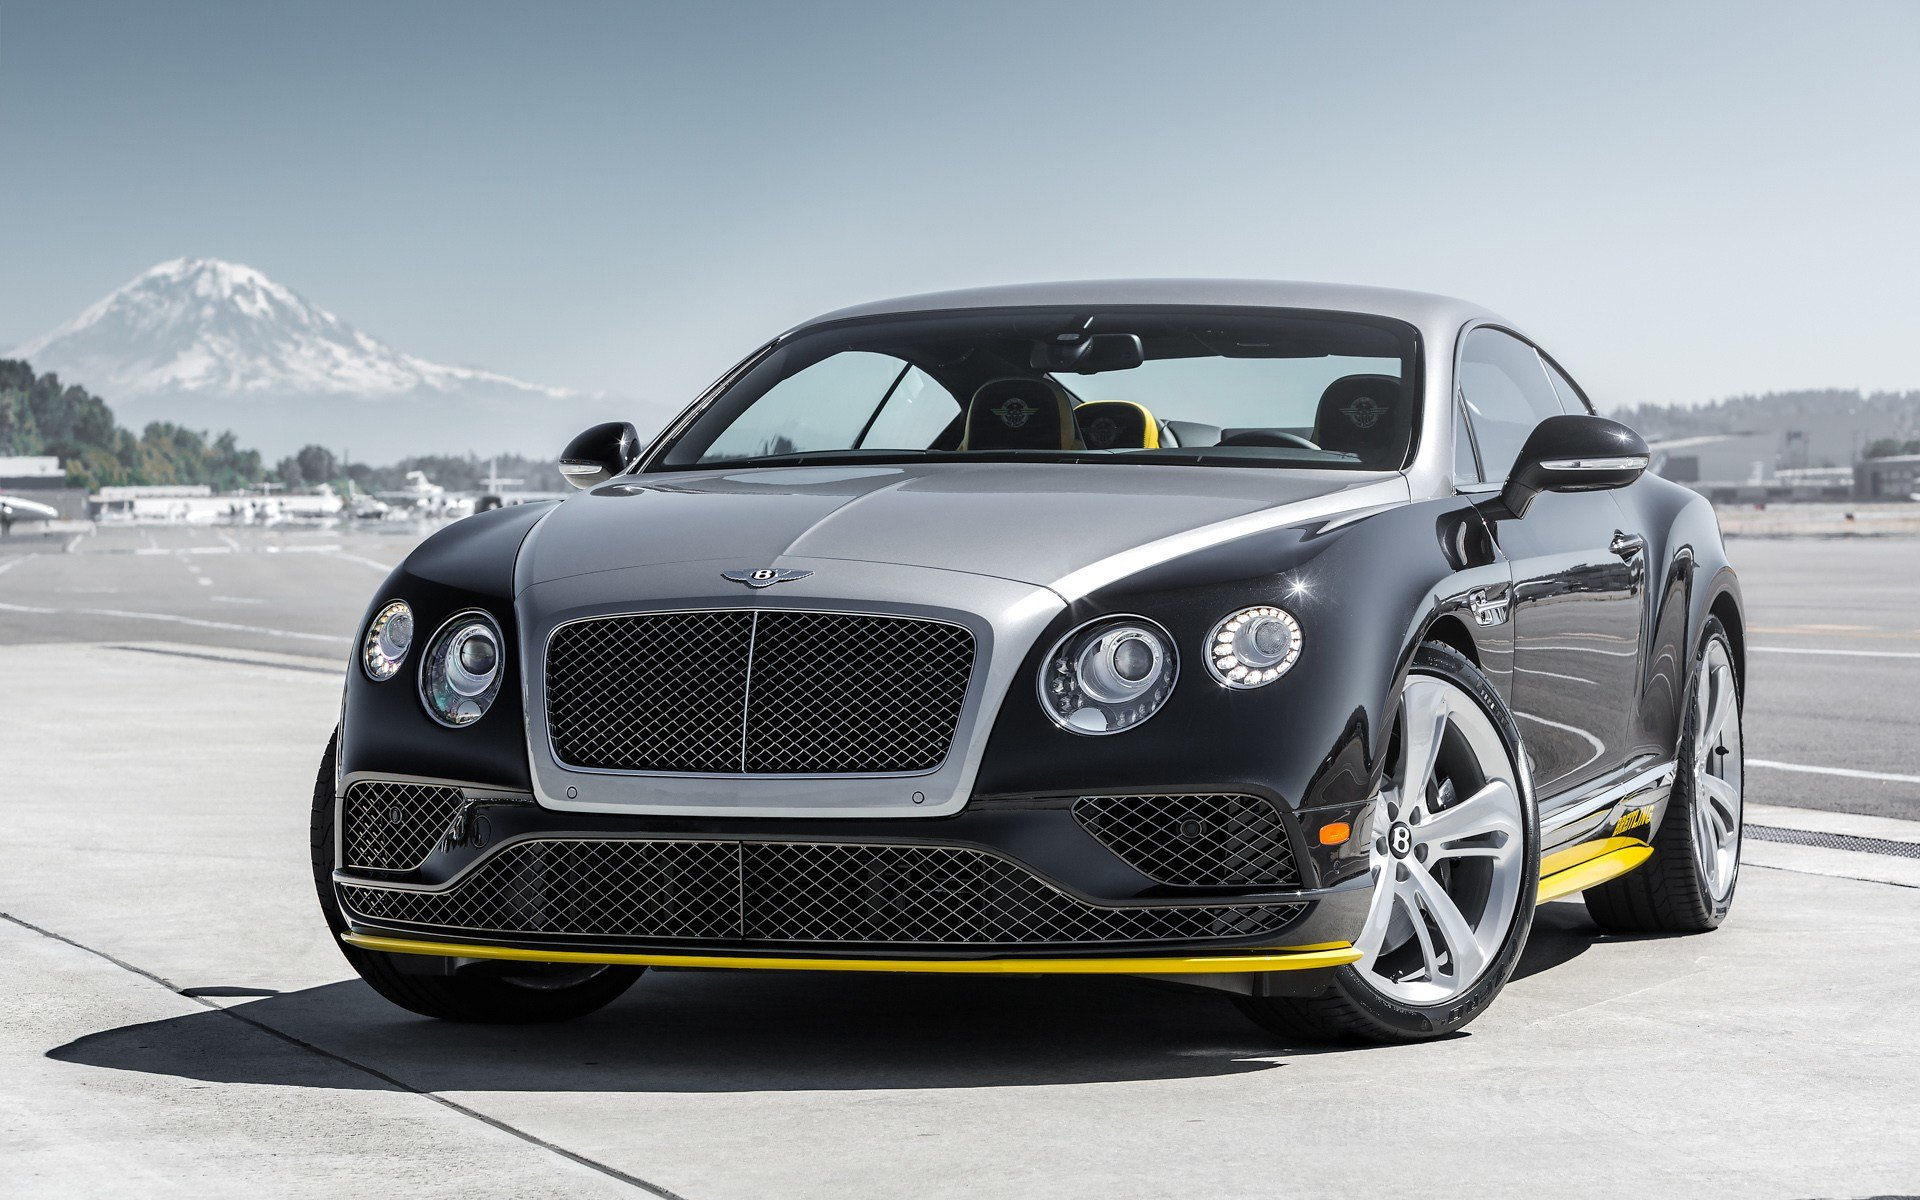 Latest 2015 Bentley Continental Gt Wallpaper Hd Car Wallpapers Free Download